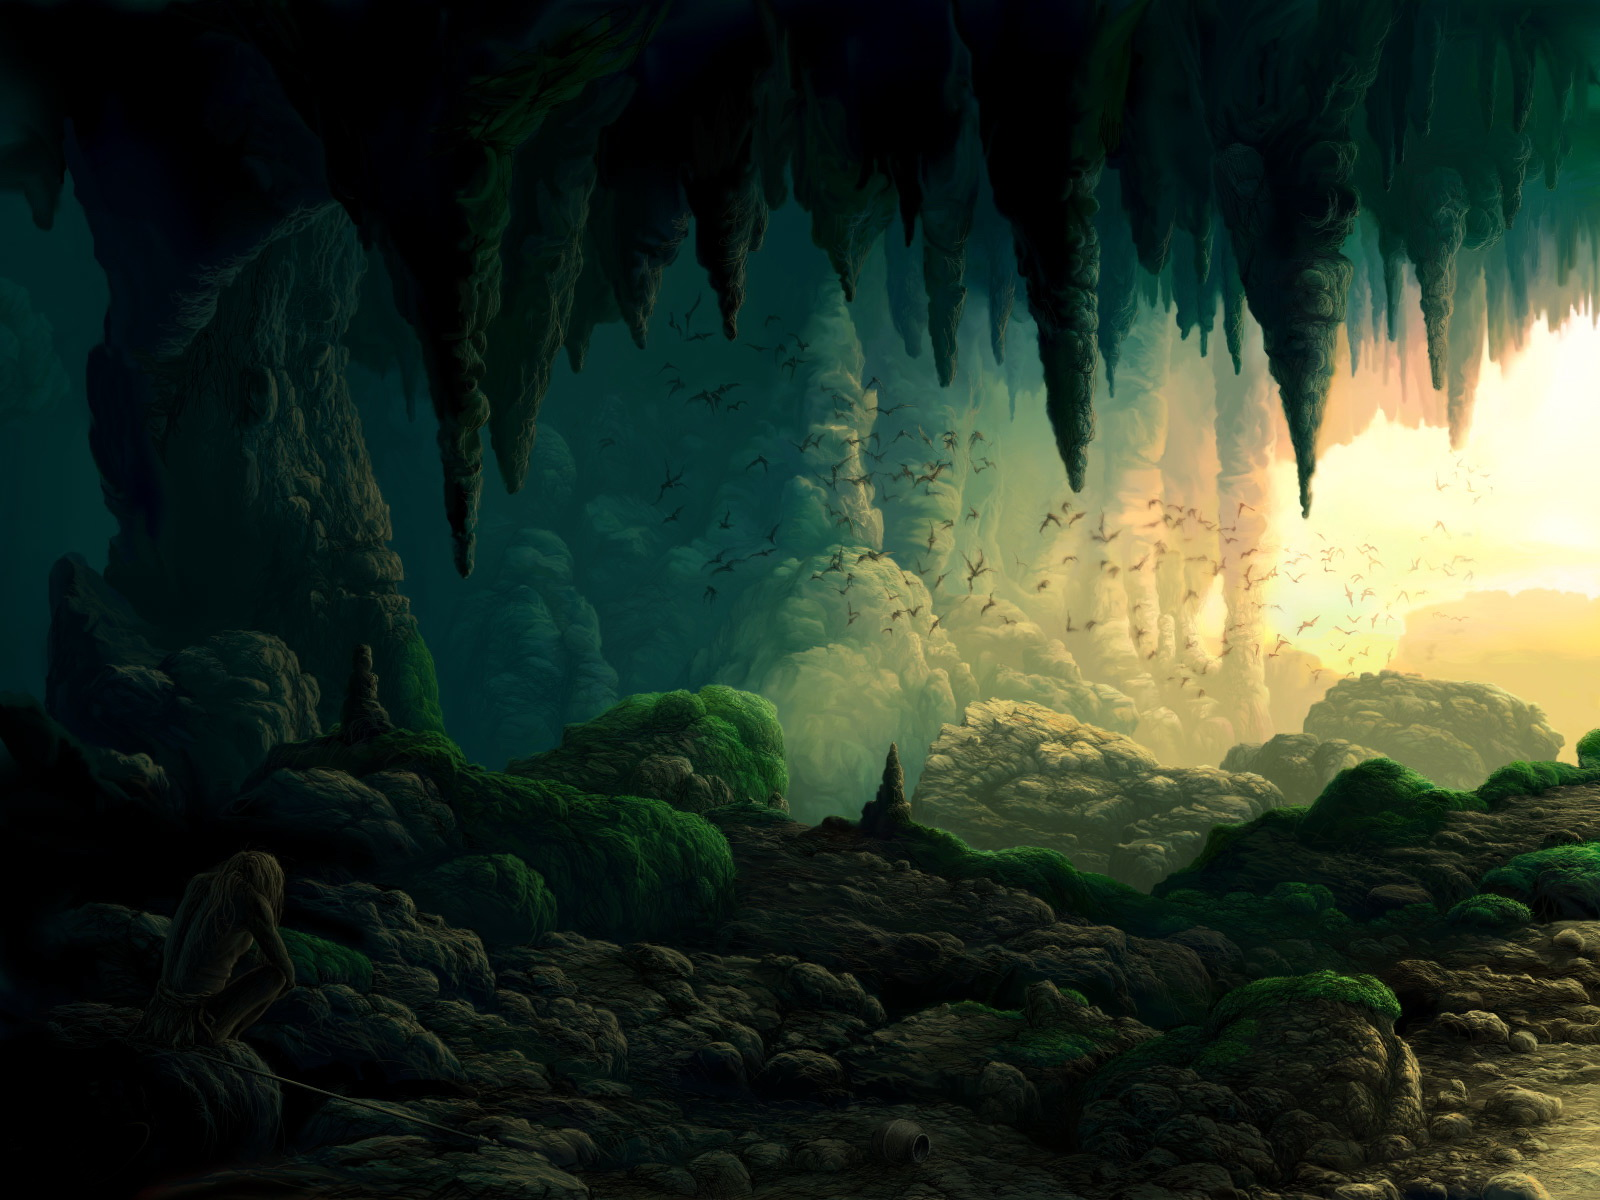 Artful Voyage Caves and Cave Art of Primordial People 1600x1200